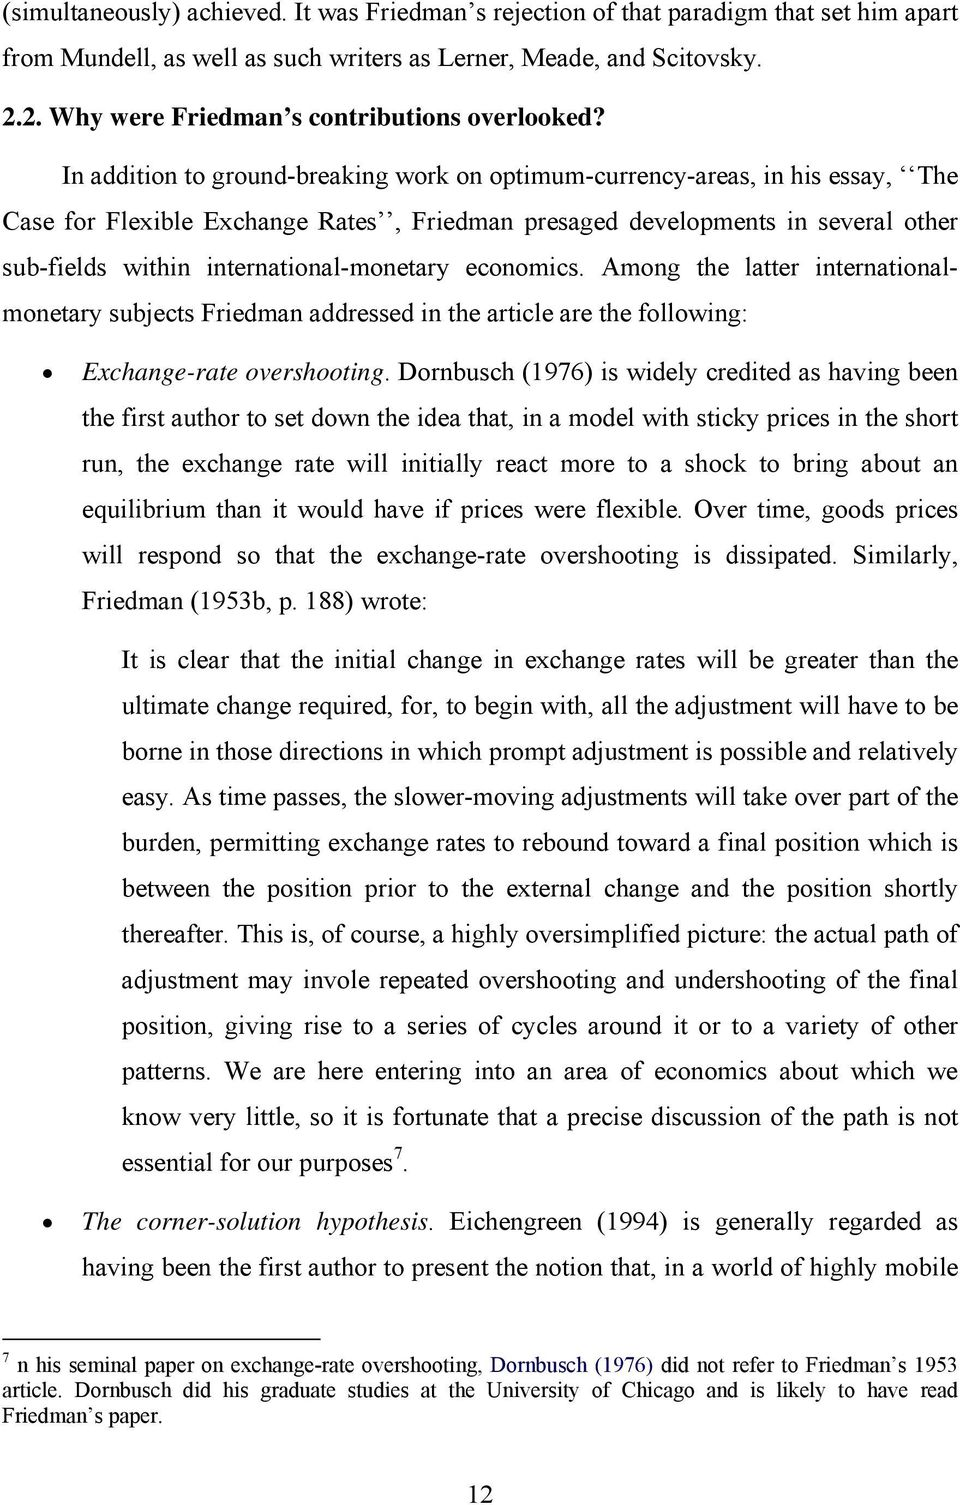 In addition to ground-breaking work on optimum-currency-areas, in his essay, The Case for Flexible Exchange Rates, Friedman presaged developments in several other sub-fields within